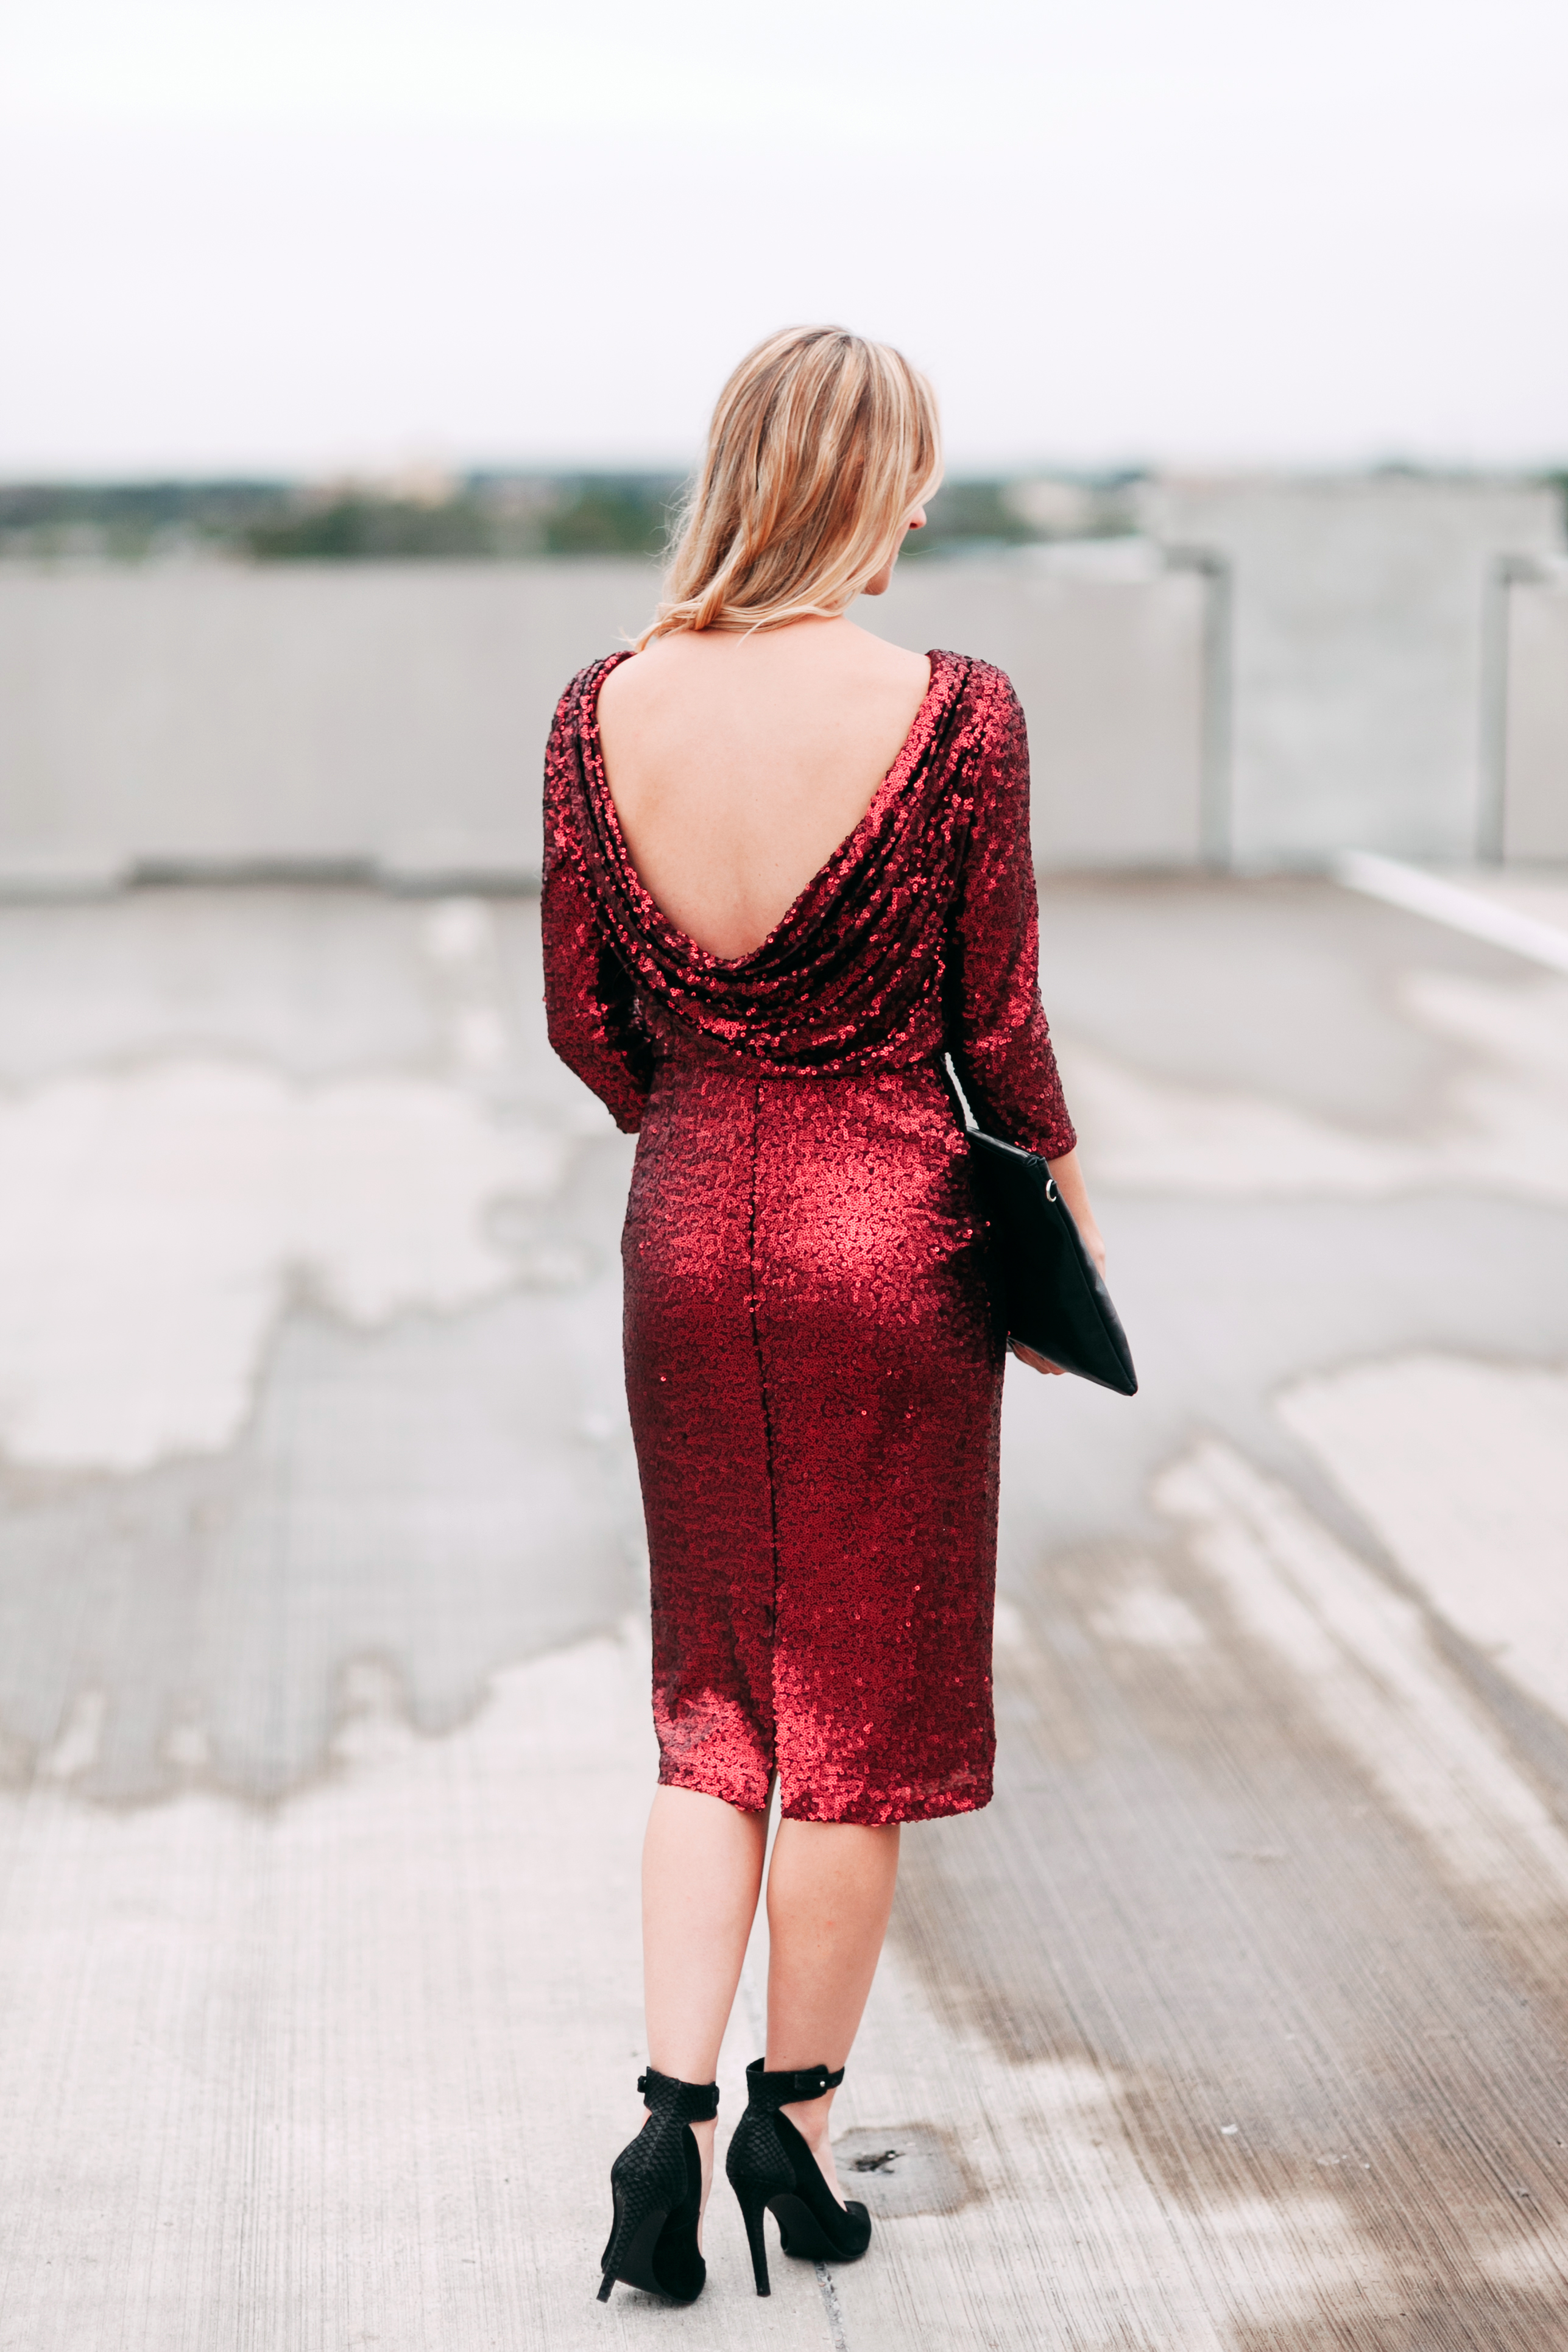 livvyland-blog-olivia-watson-badgley-mischka-red-wine-merlot-sequins-sheath-dress-christmas-holiday-party-style-outfit-inspiration-dress-kayla-snell-photography-austin-texas-fashion-blogger-2